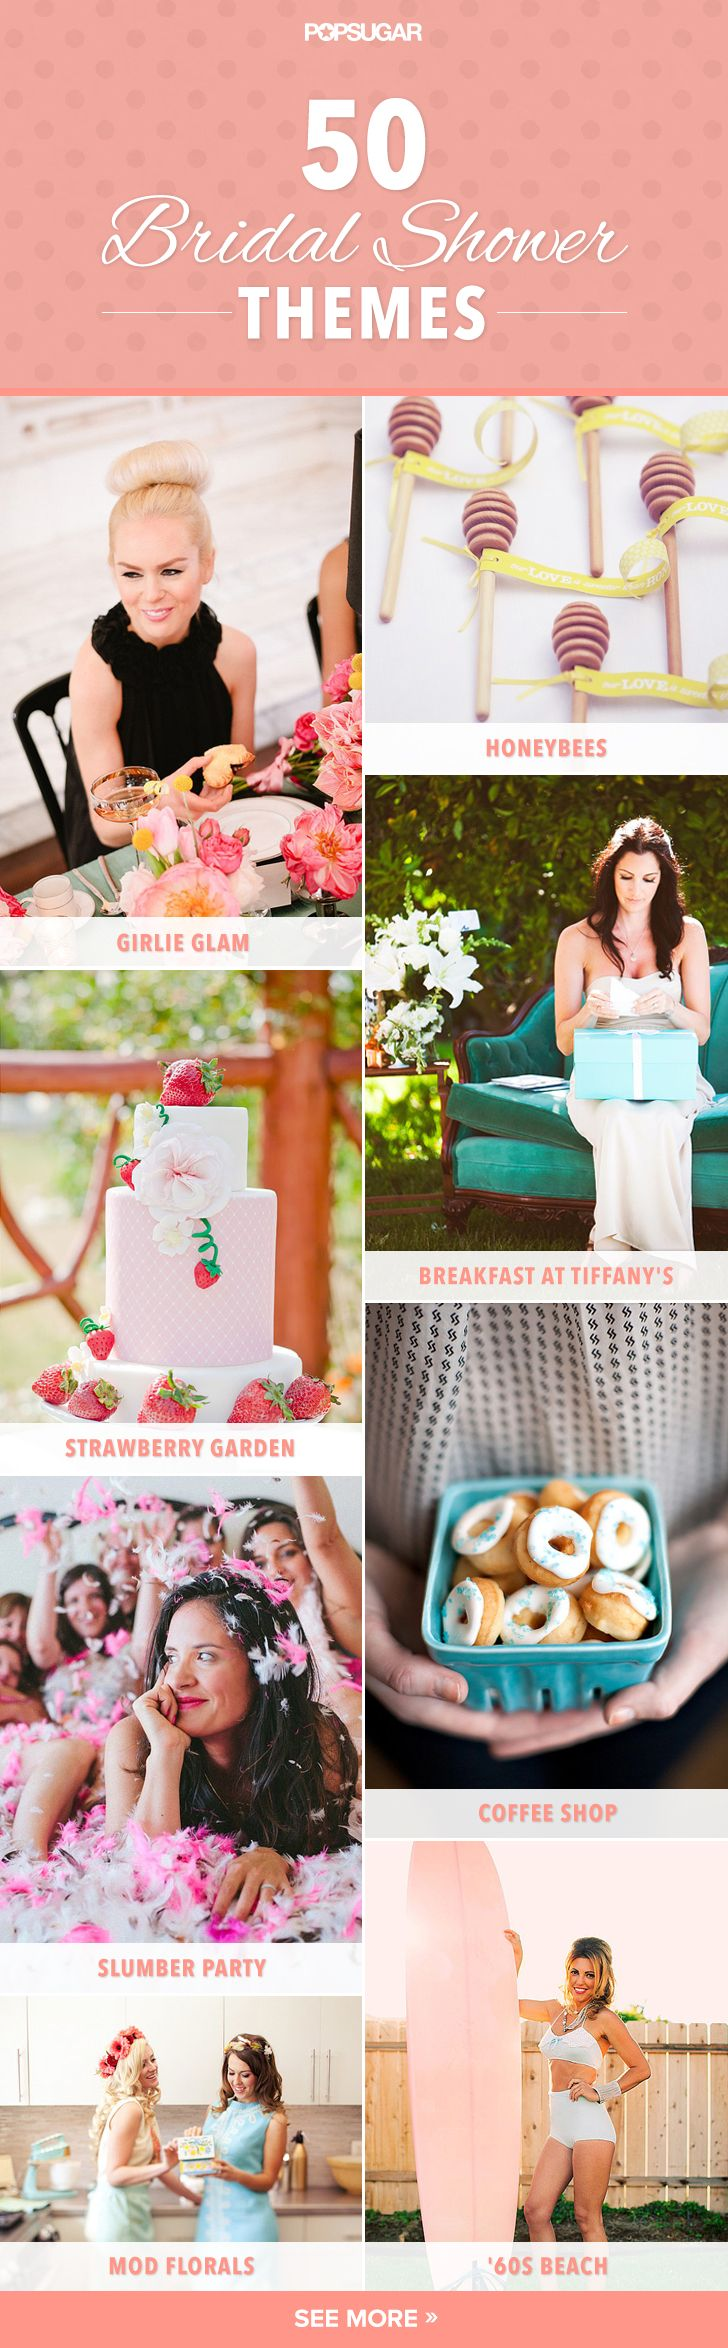 Single or not, weddings make for the ultimate girl-bonding events: bridal showers and bachelorette parties. So we've scoured our favorite big-day blogs for 50 of the most fun, creative, and pretty party themes, perfect for a bridal shower or bachelorette party.